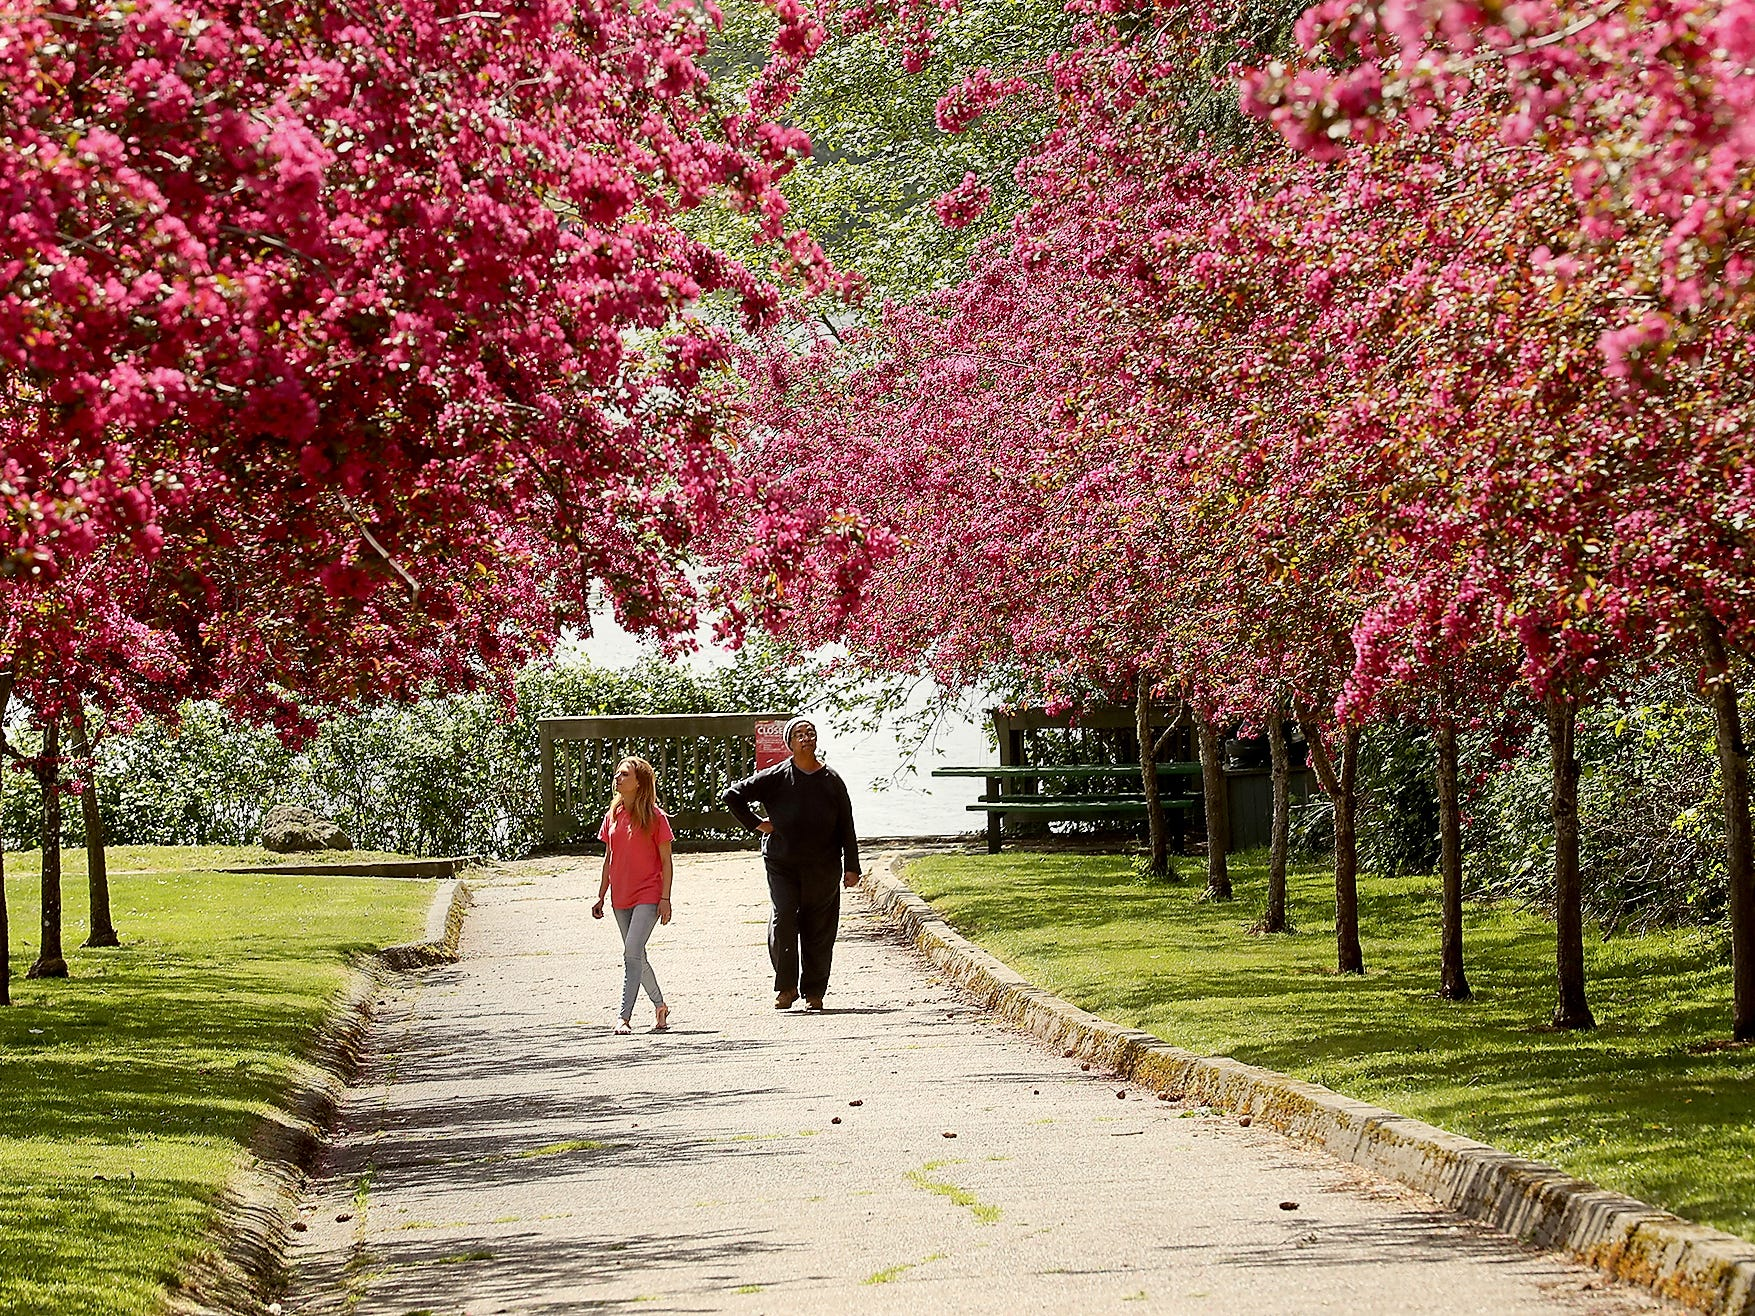 Judith Tako, left, and friend Gladys Baxter admire the blossoms as they stroll along the pathway in Bremerton's Lent Landing Park on Friday, April 26, 2019.